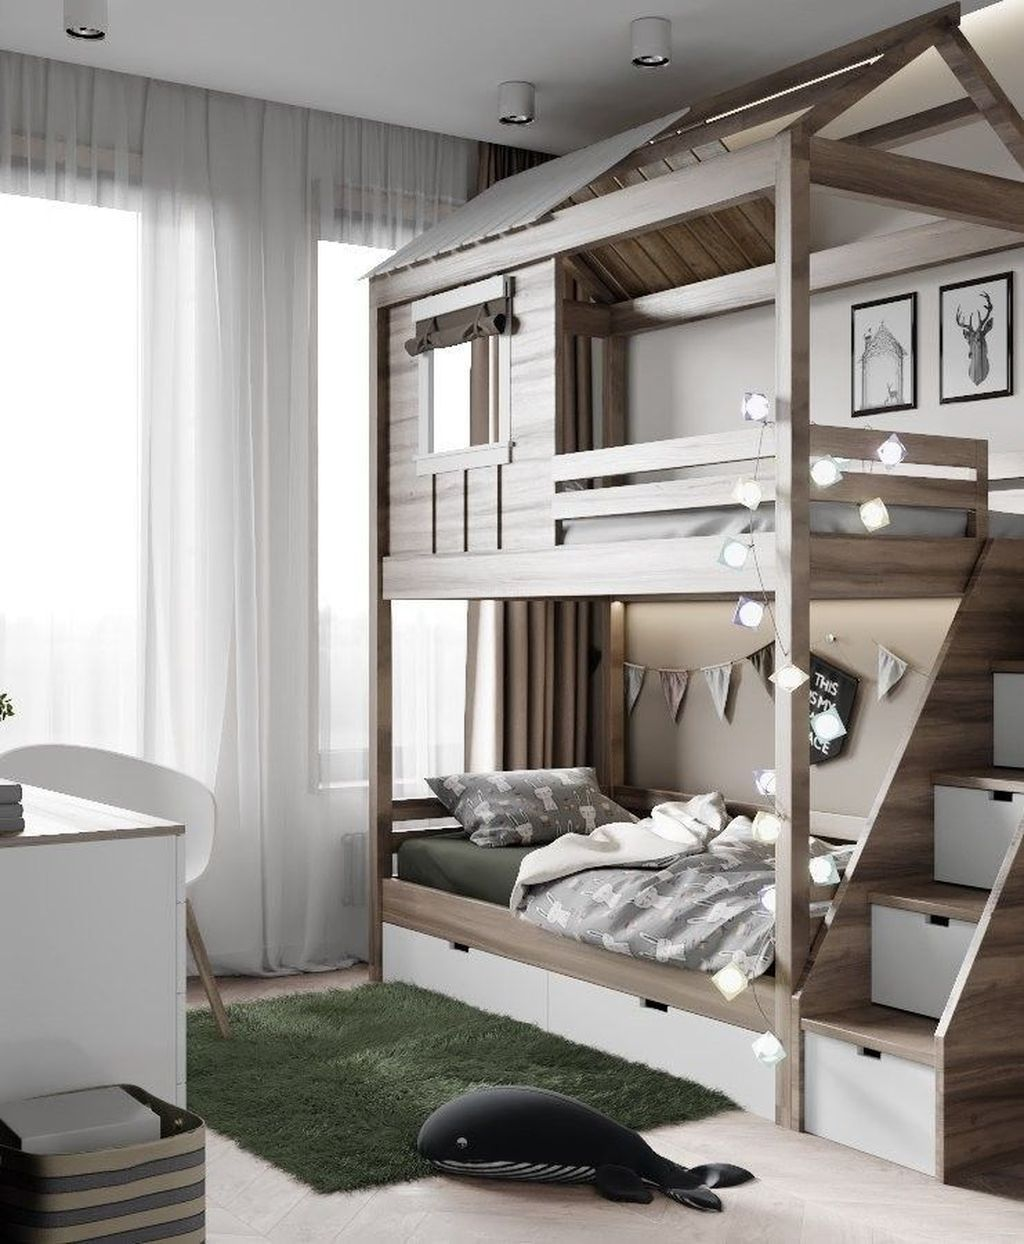 40+ Affordable Kids Bedroom Design Ideas That Suitable For Kids is part of Kids bunk beds - Your kid is a special human being to you and therefore you should ensure that your kids bedroom designs are […]